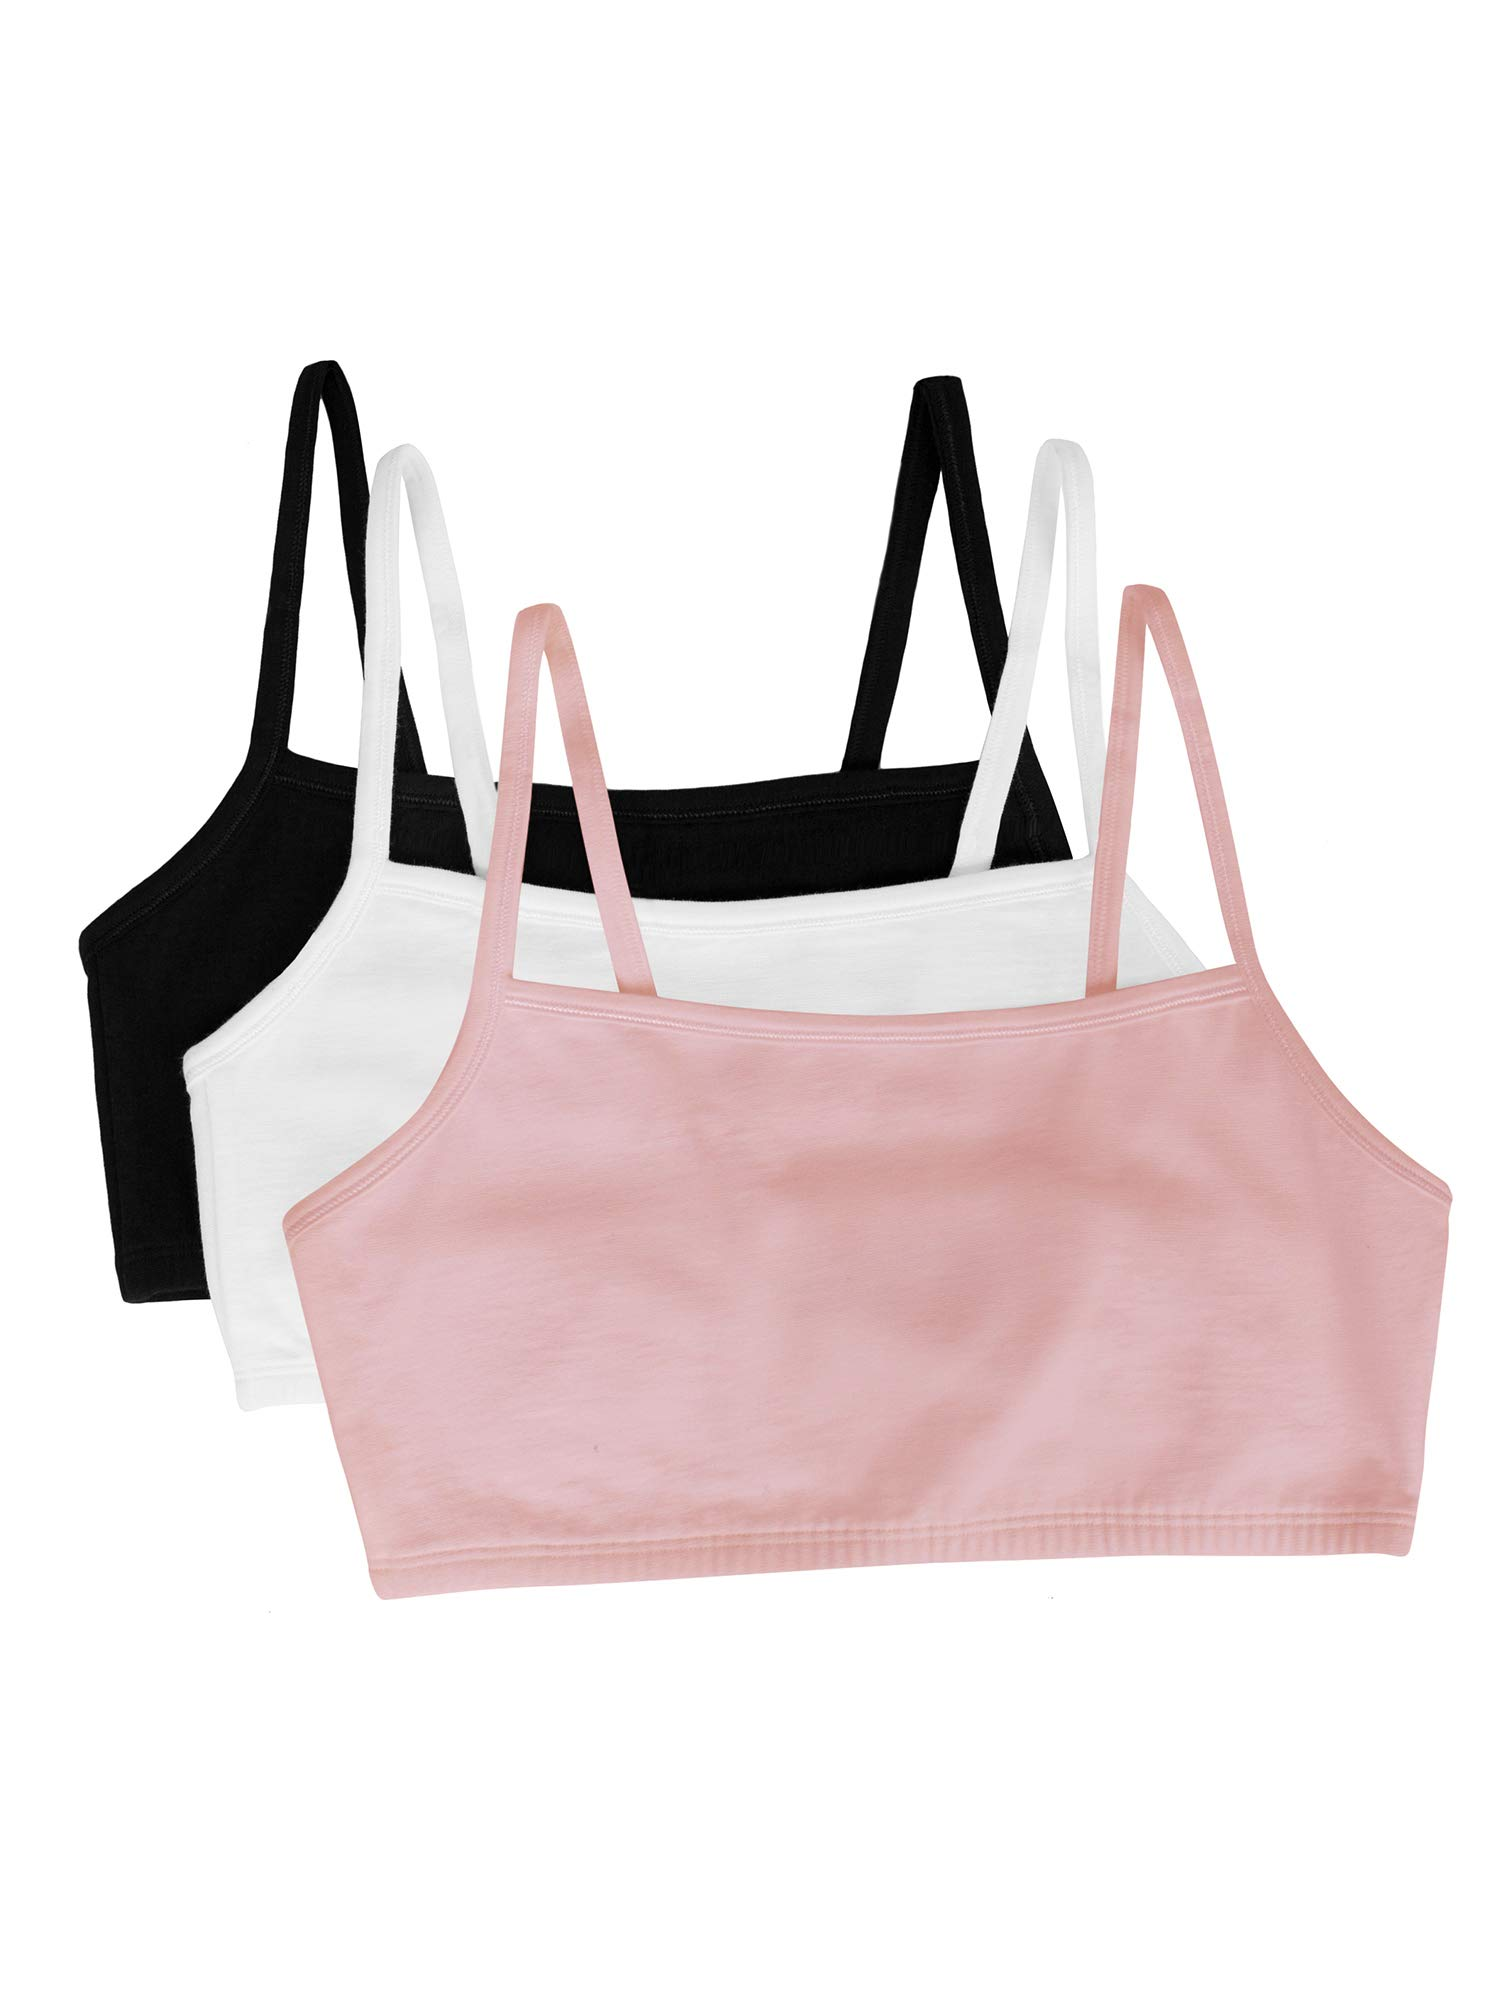 Fruit of the Loom womens Cotton Pullover Sport Bra, blushing rose/white/black 32 by Fruit of the Loom